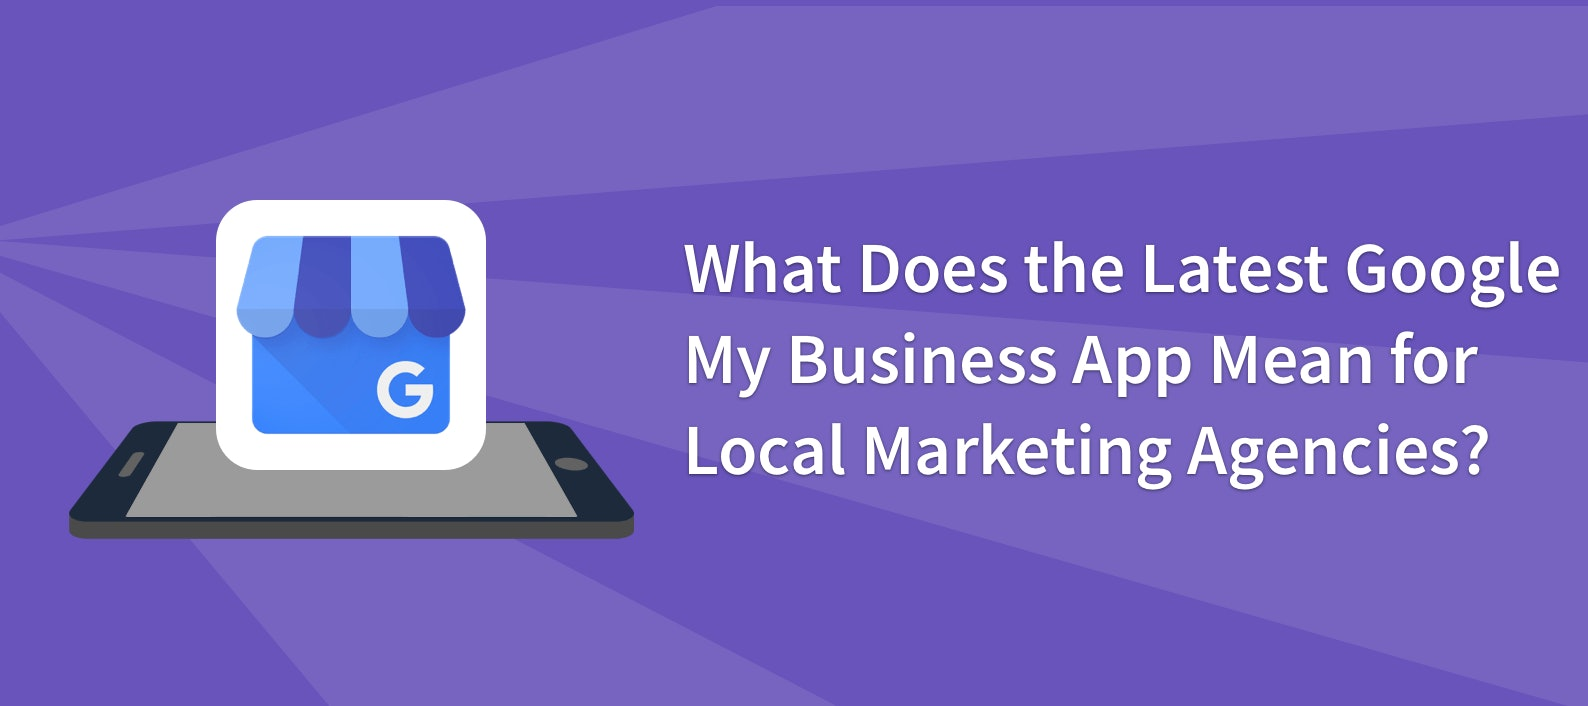 What Does the Latest Google My Business App Mean for Local Marketing Agencies?